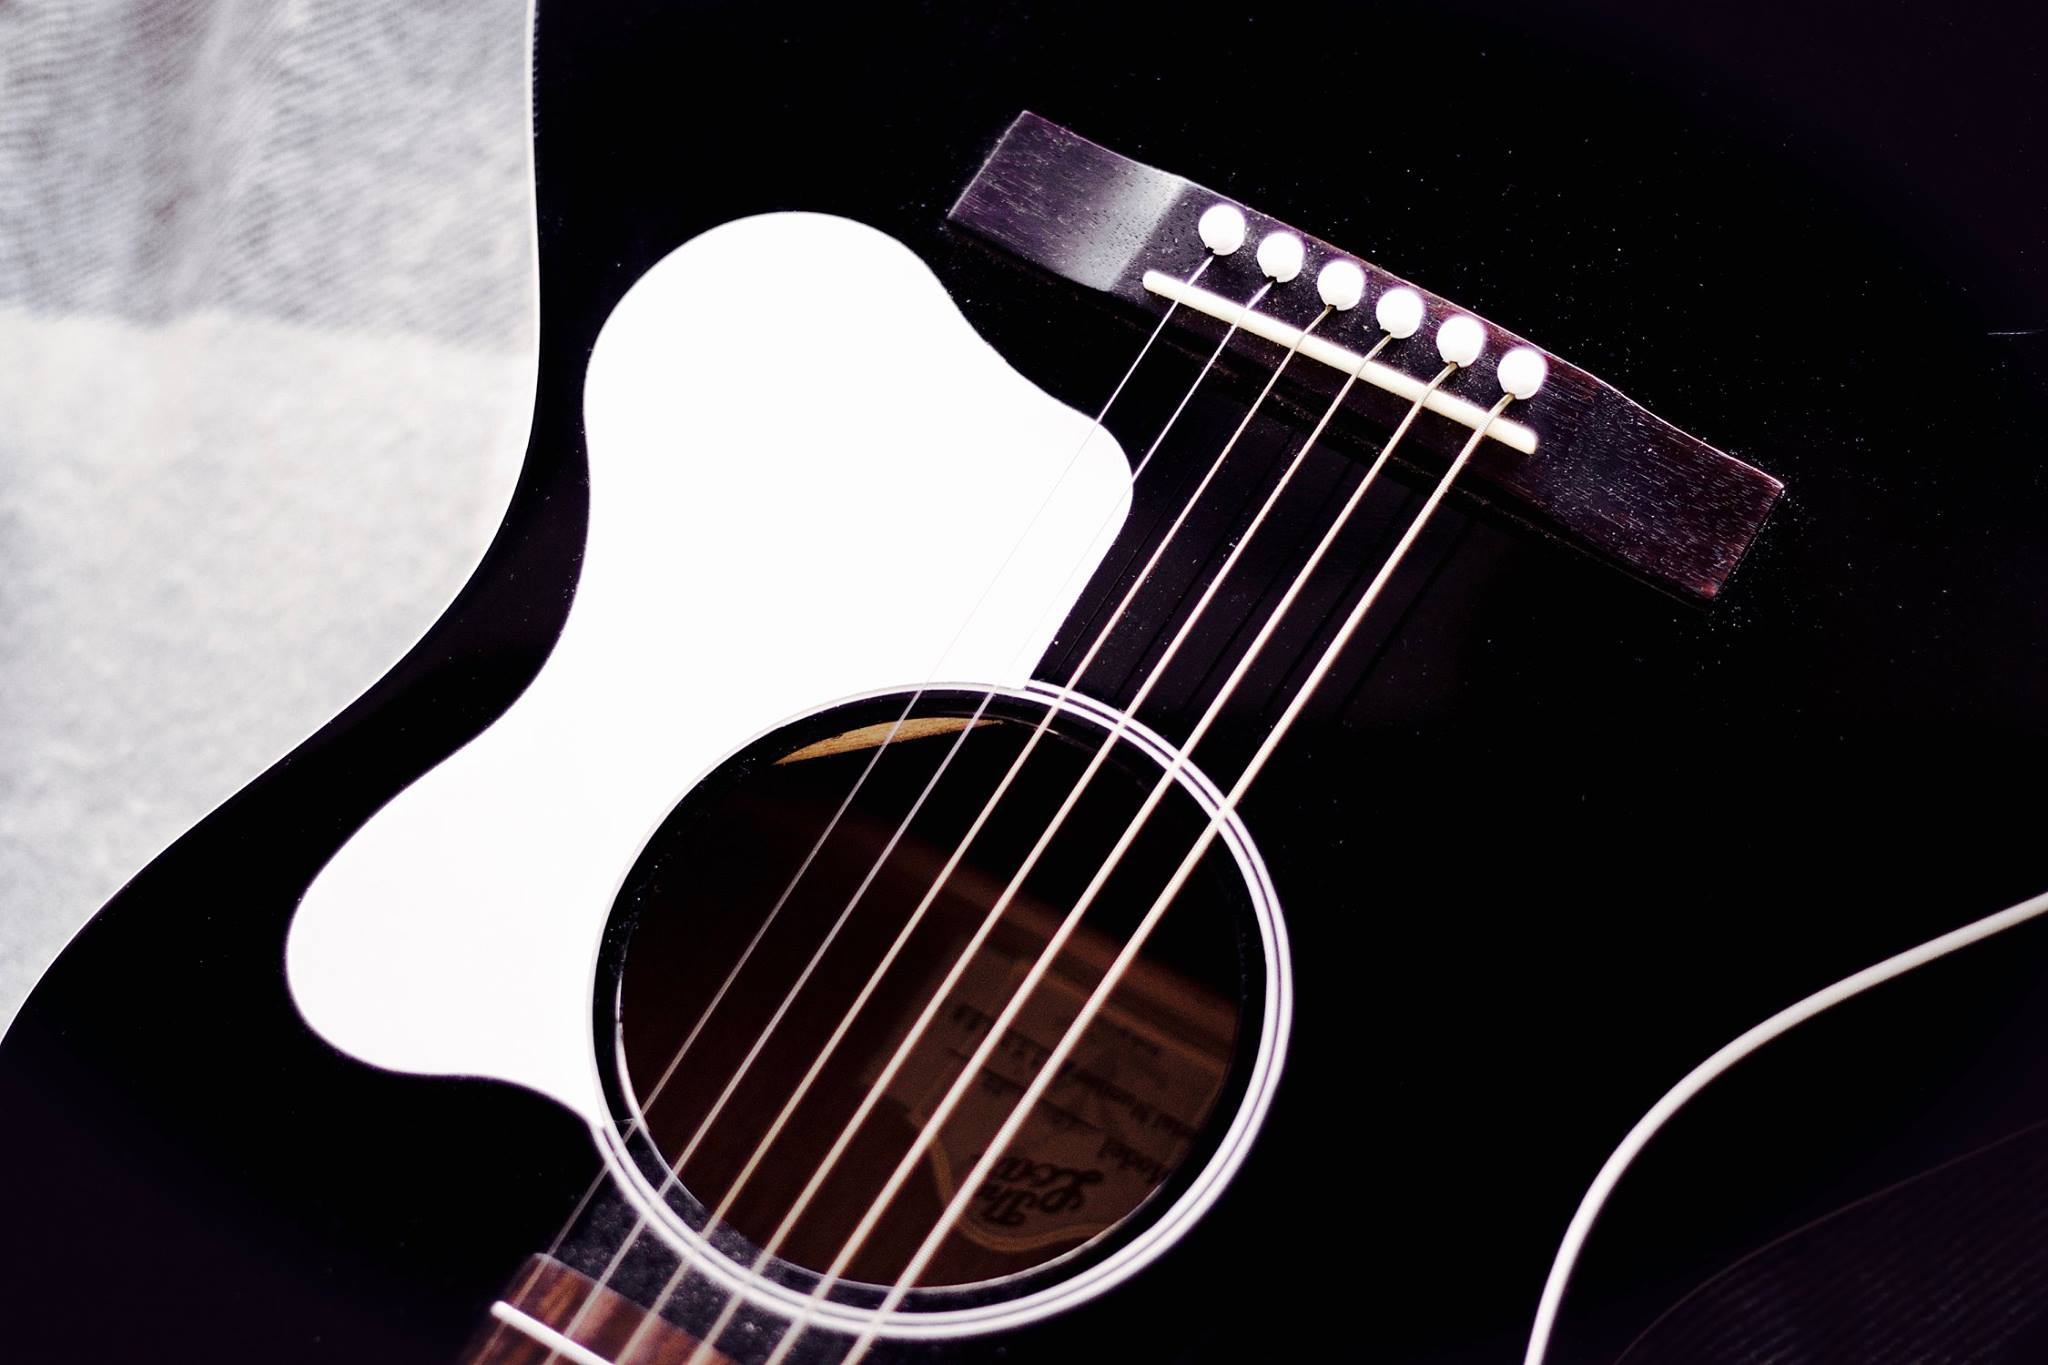 Tip: Learn as much as you can about the craft of songwriting